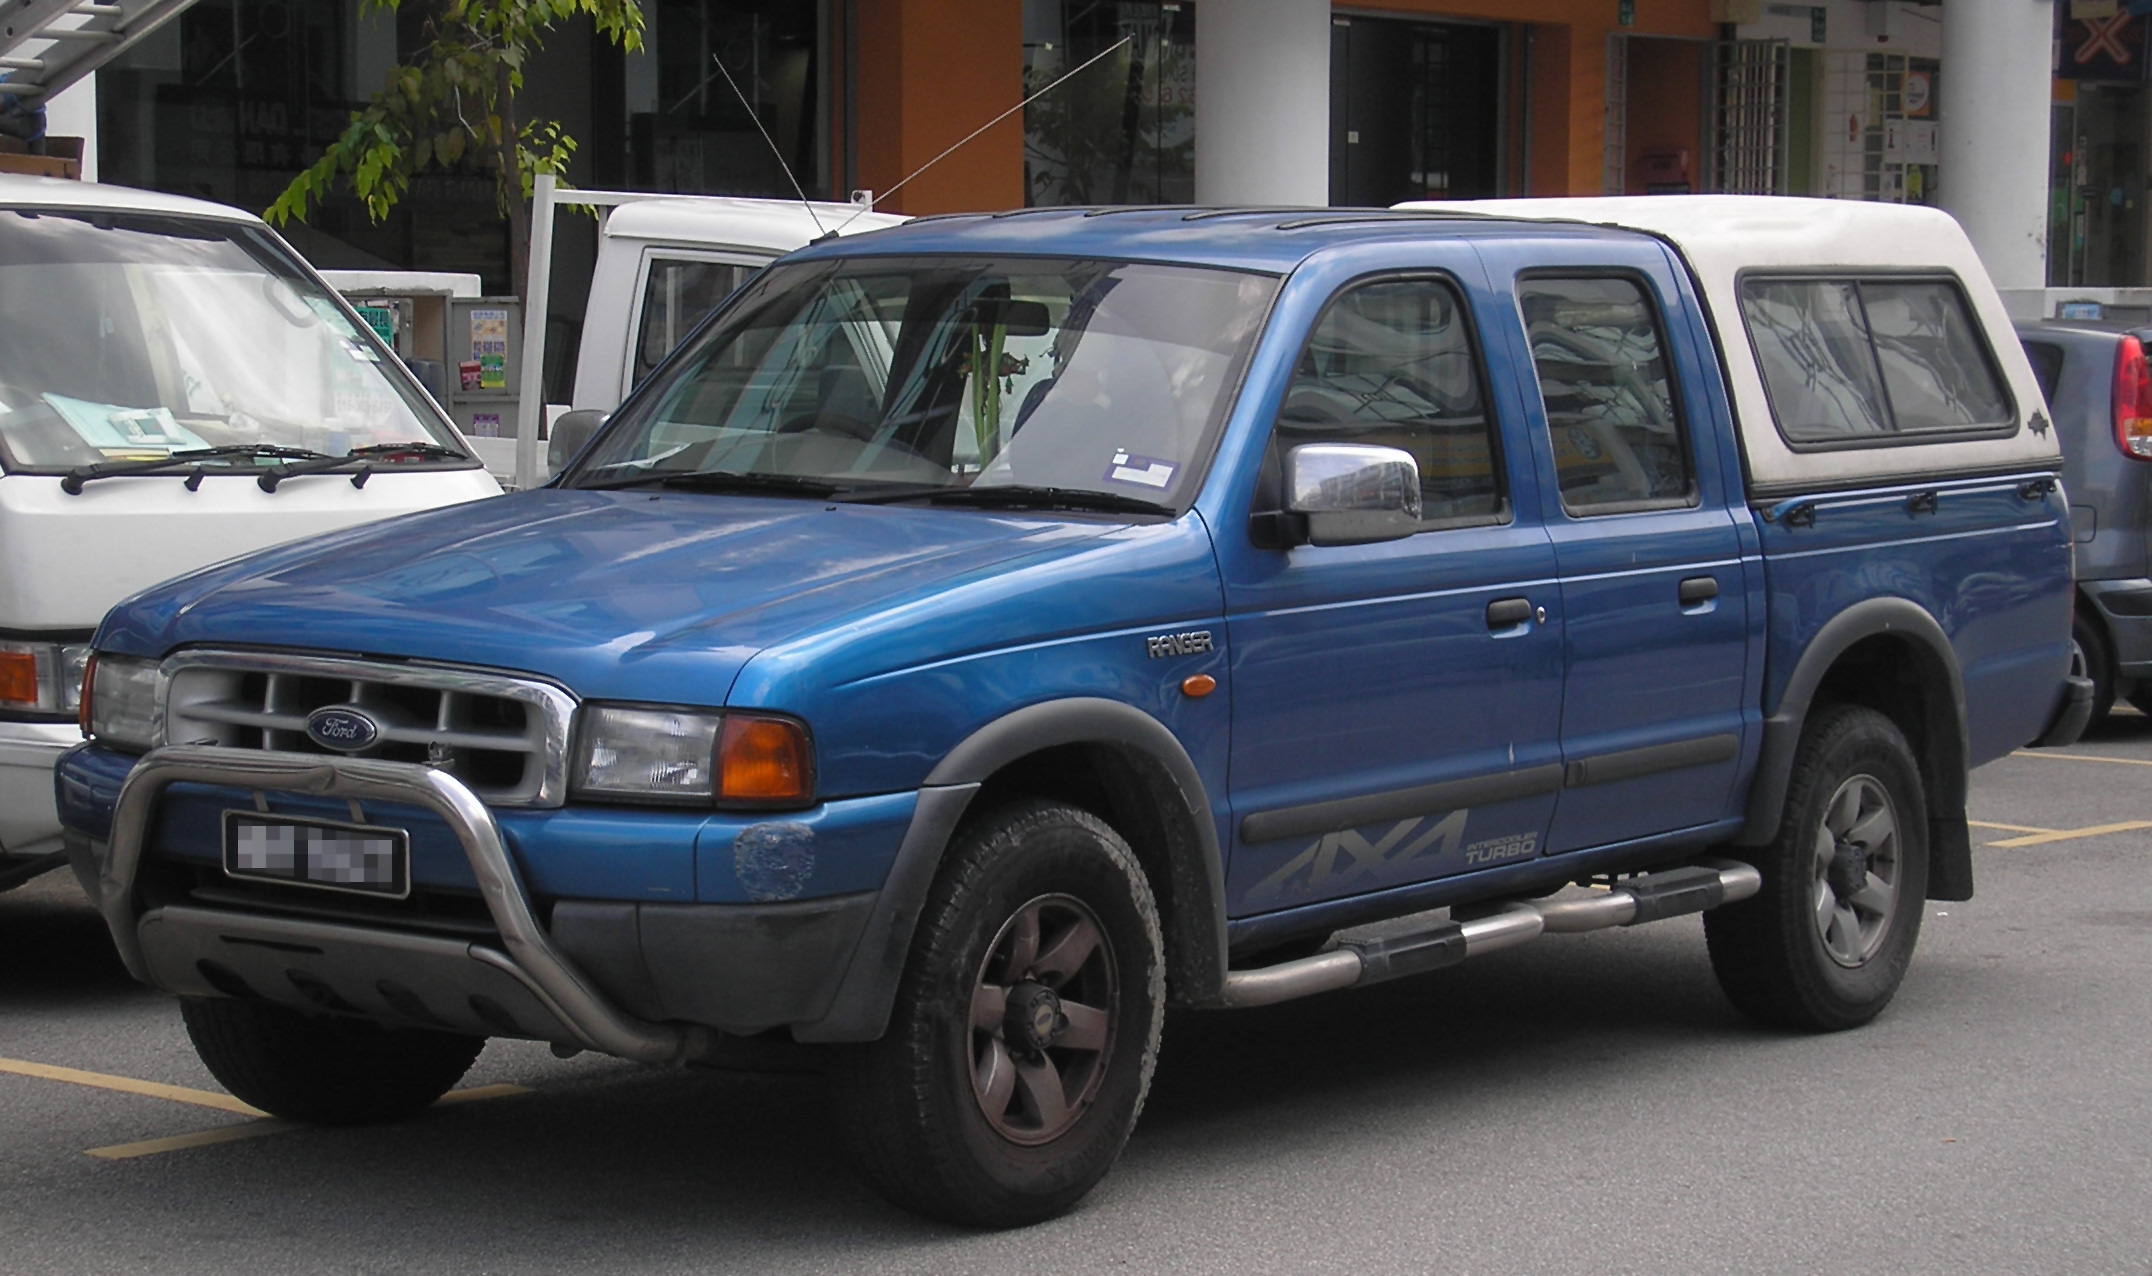 File:Ford Ranger (Southeast Asian, First Generation) (front), Serdang